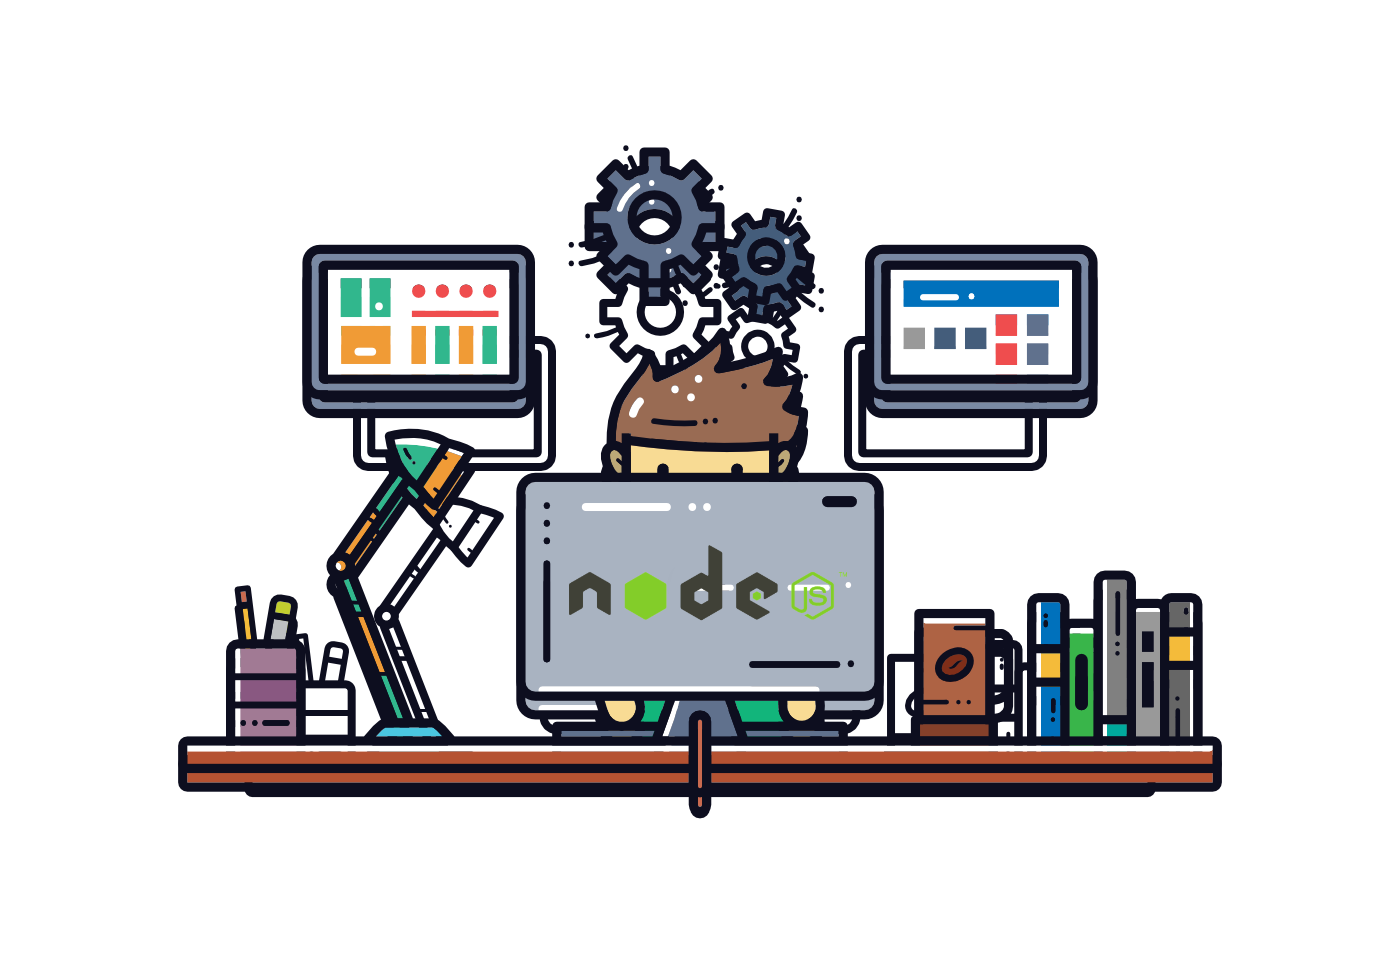 NodeJS: Building Your Own Backend & Rest APIs using Express & MongoDB Atlas